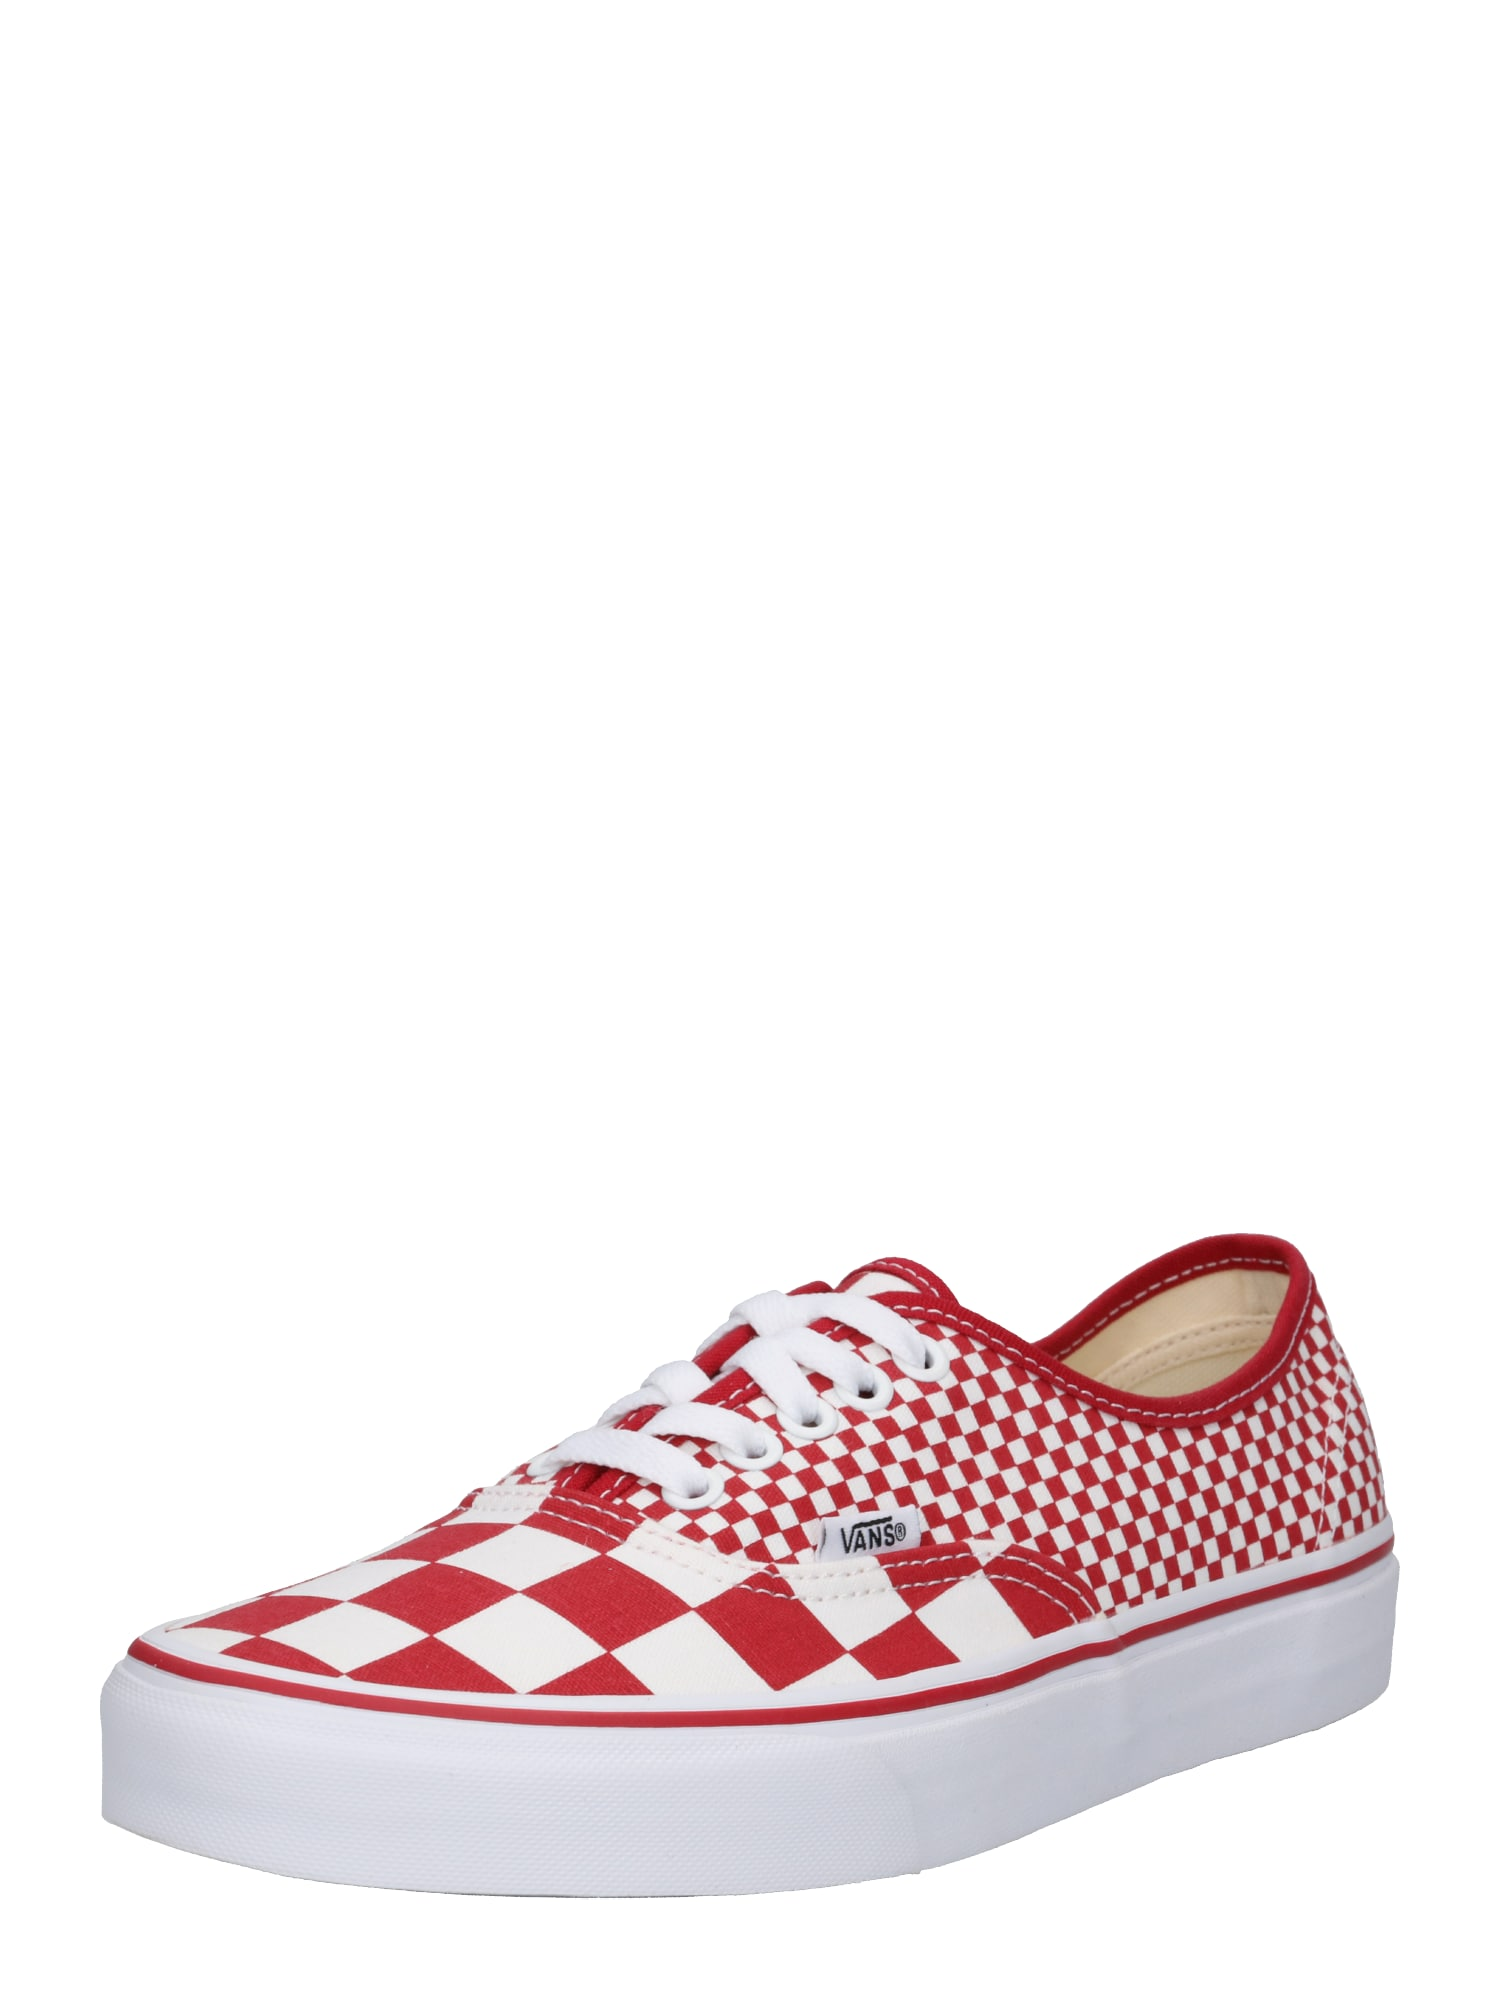 VANS, Heren Sneakers laag 'UA Authentic', rood / wit